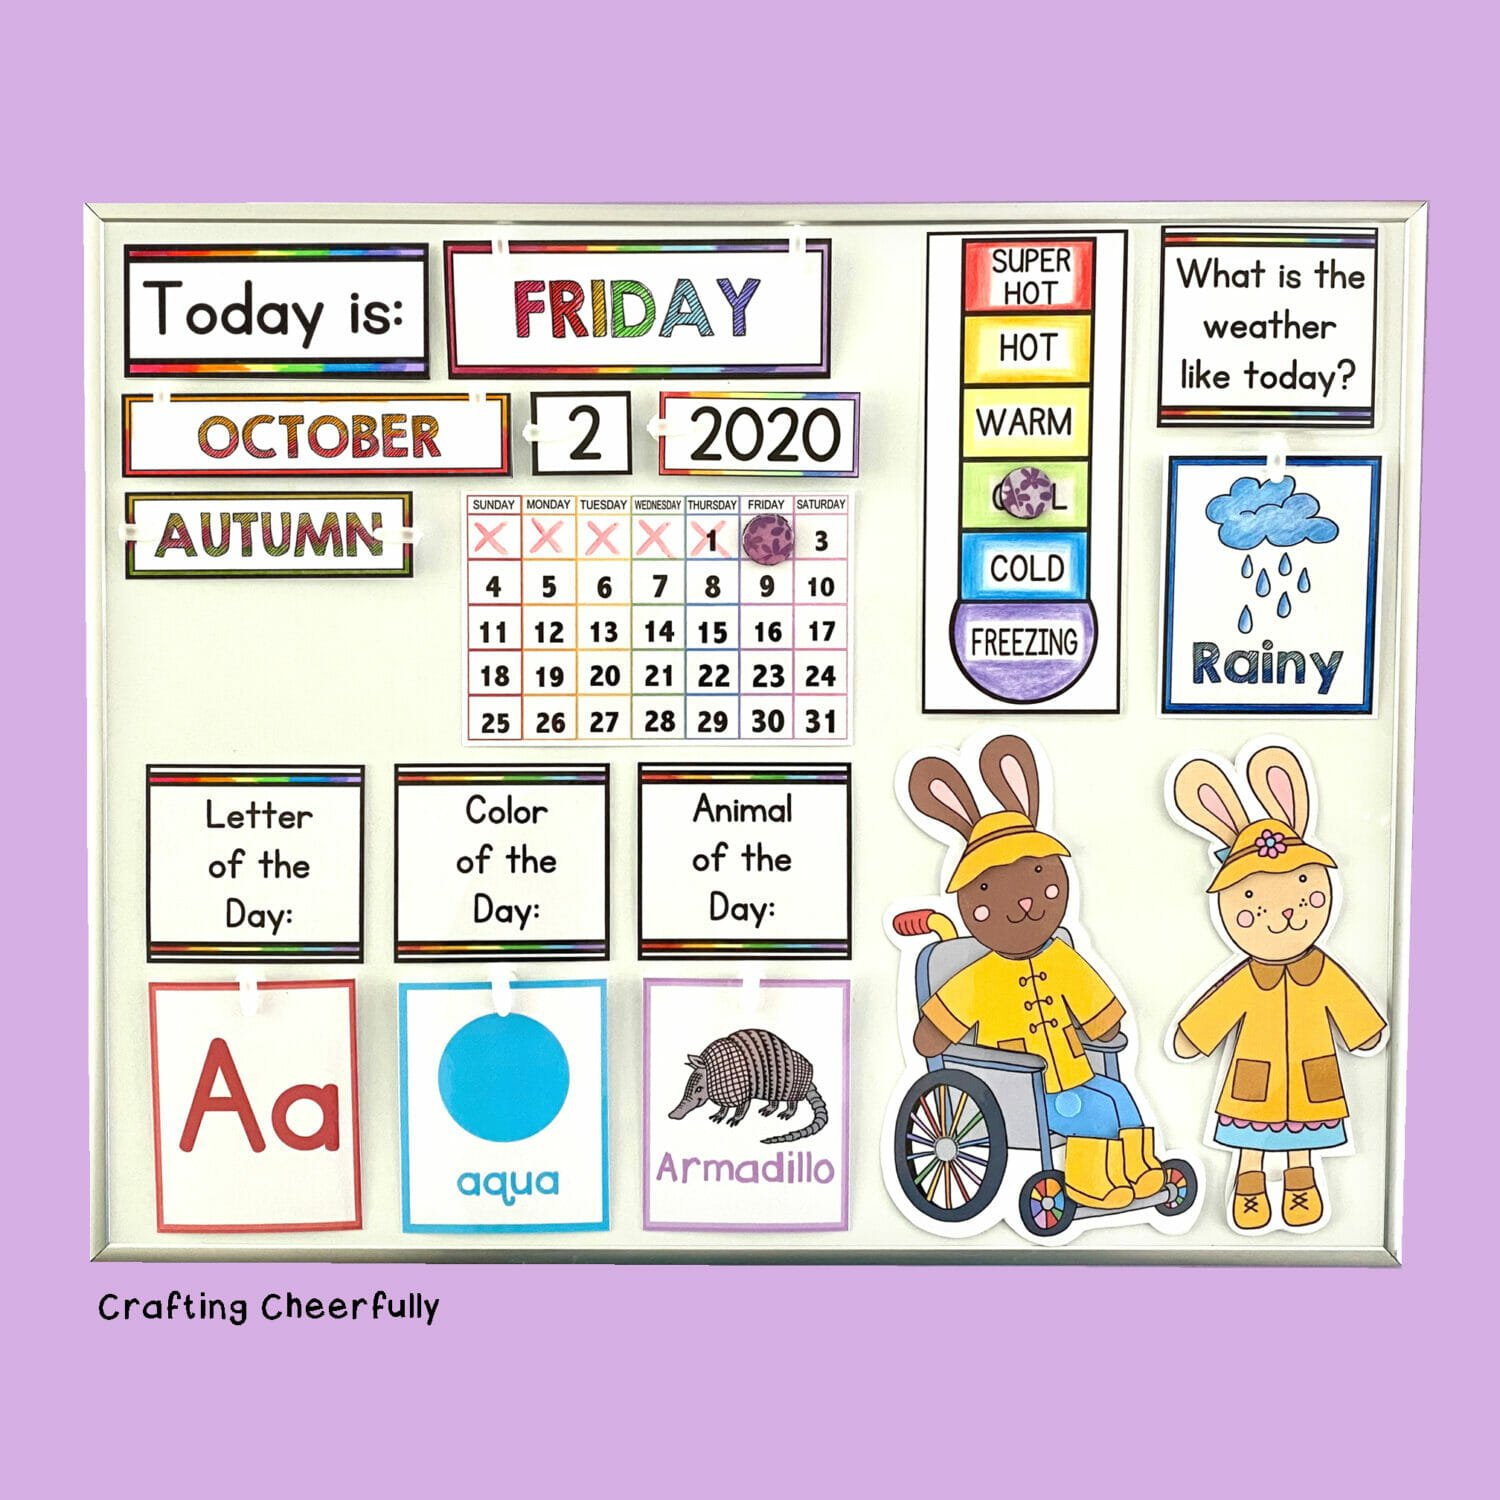 DIY Children's calendar with colorful cards for the day of the week and weather.